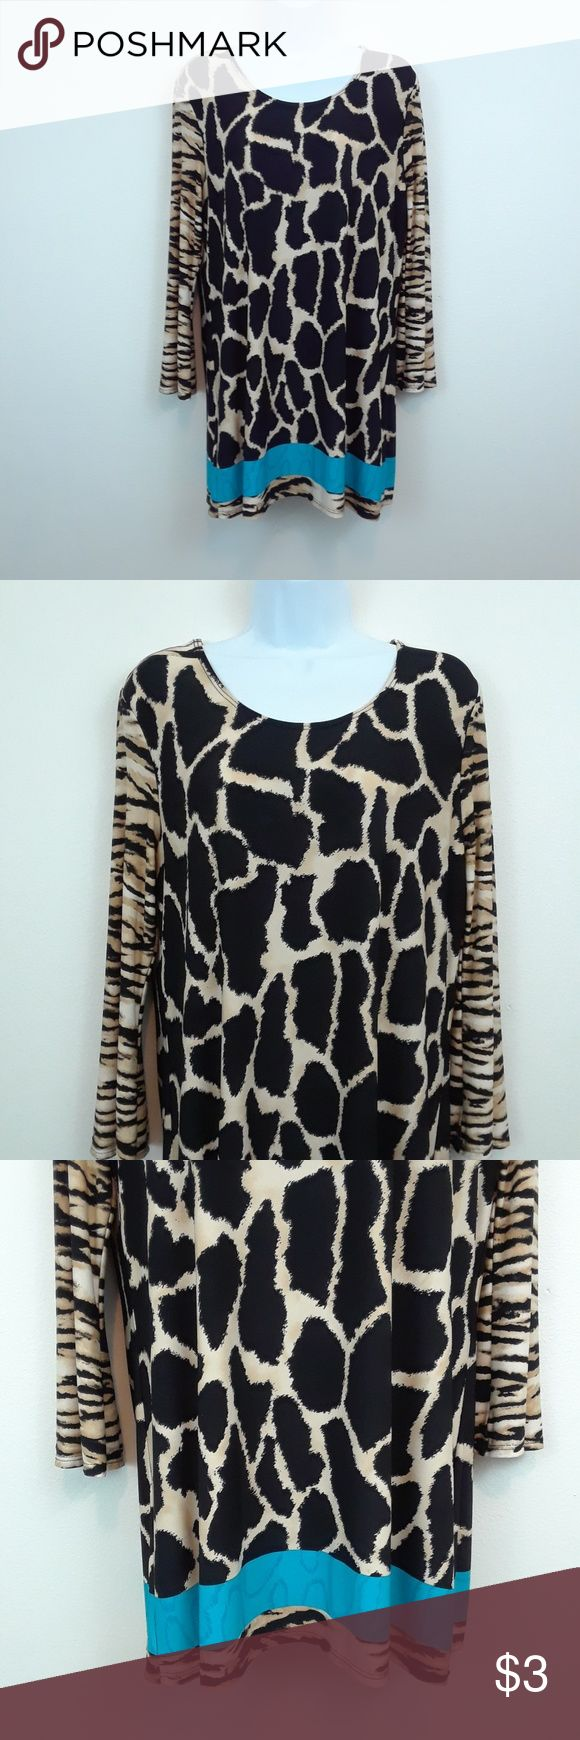 PECK & PECK L ANIMAL PRINT LONG SLEEVE TUNIC DRESS Size large  Wide sleeves Cheetah and zebra animal print with blue accent stripe at hem. 95% polyester 5% spandex Peck & Peck Dresses Midi